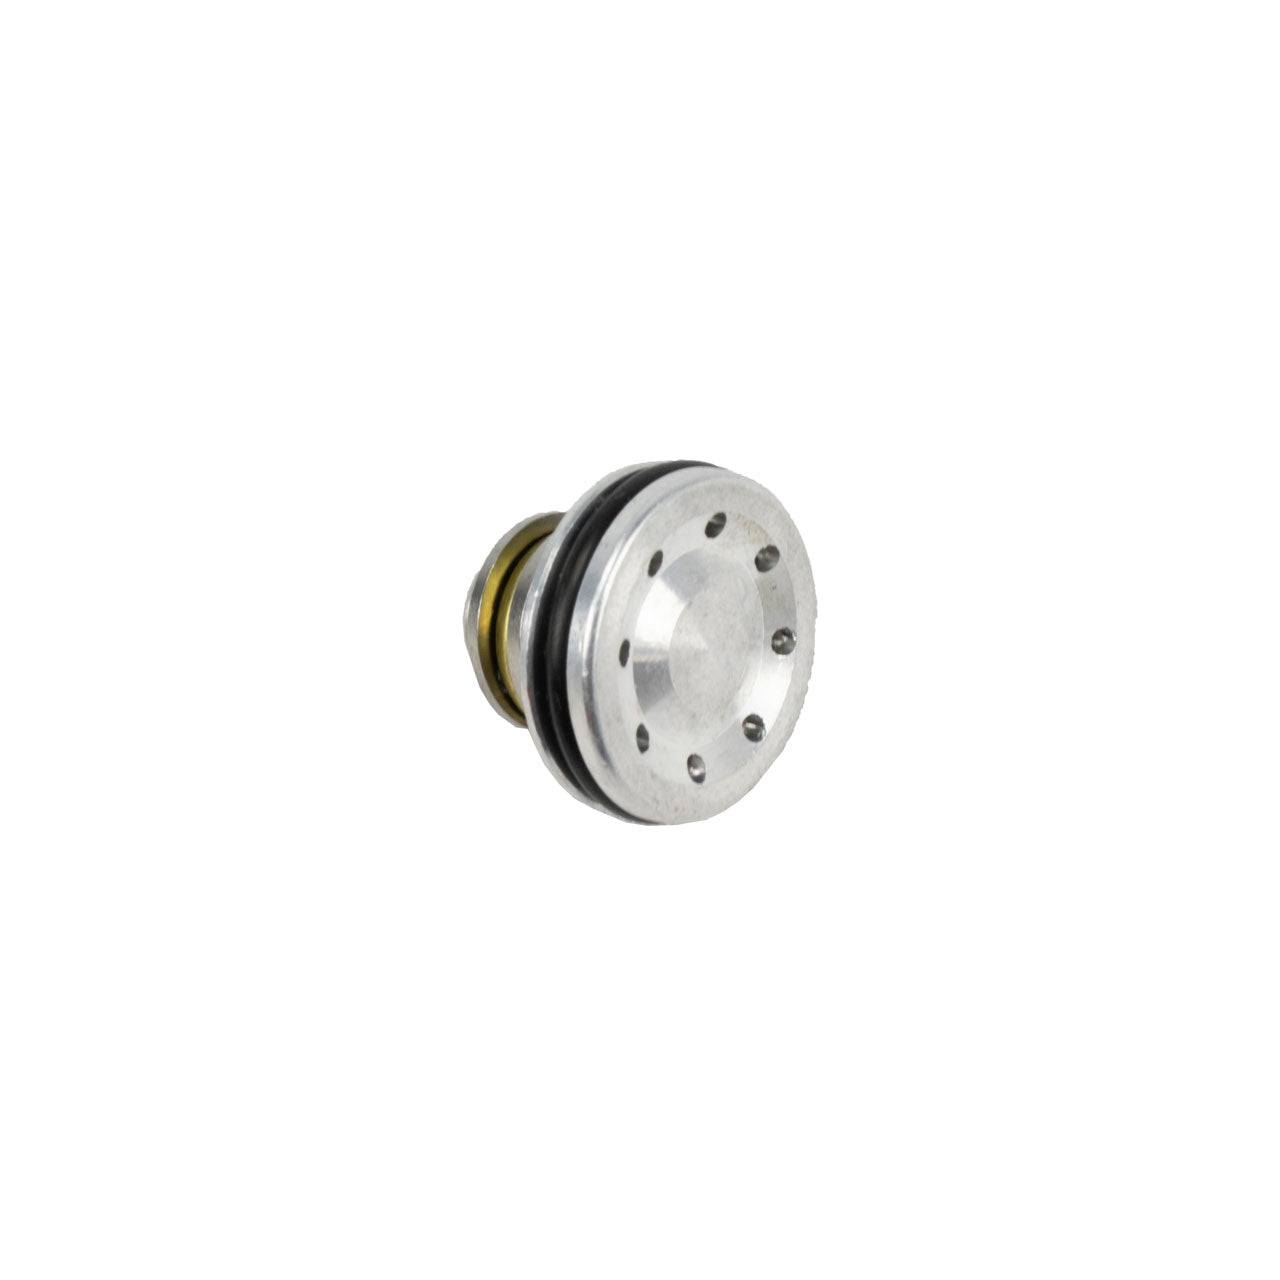 Rocket Airsoft CNC Aluminum Ball Bearing Piston Head for AEG Gearboxes